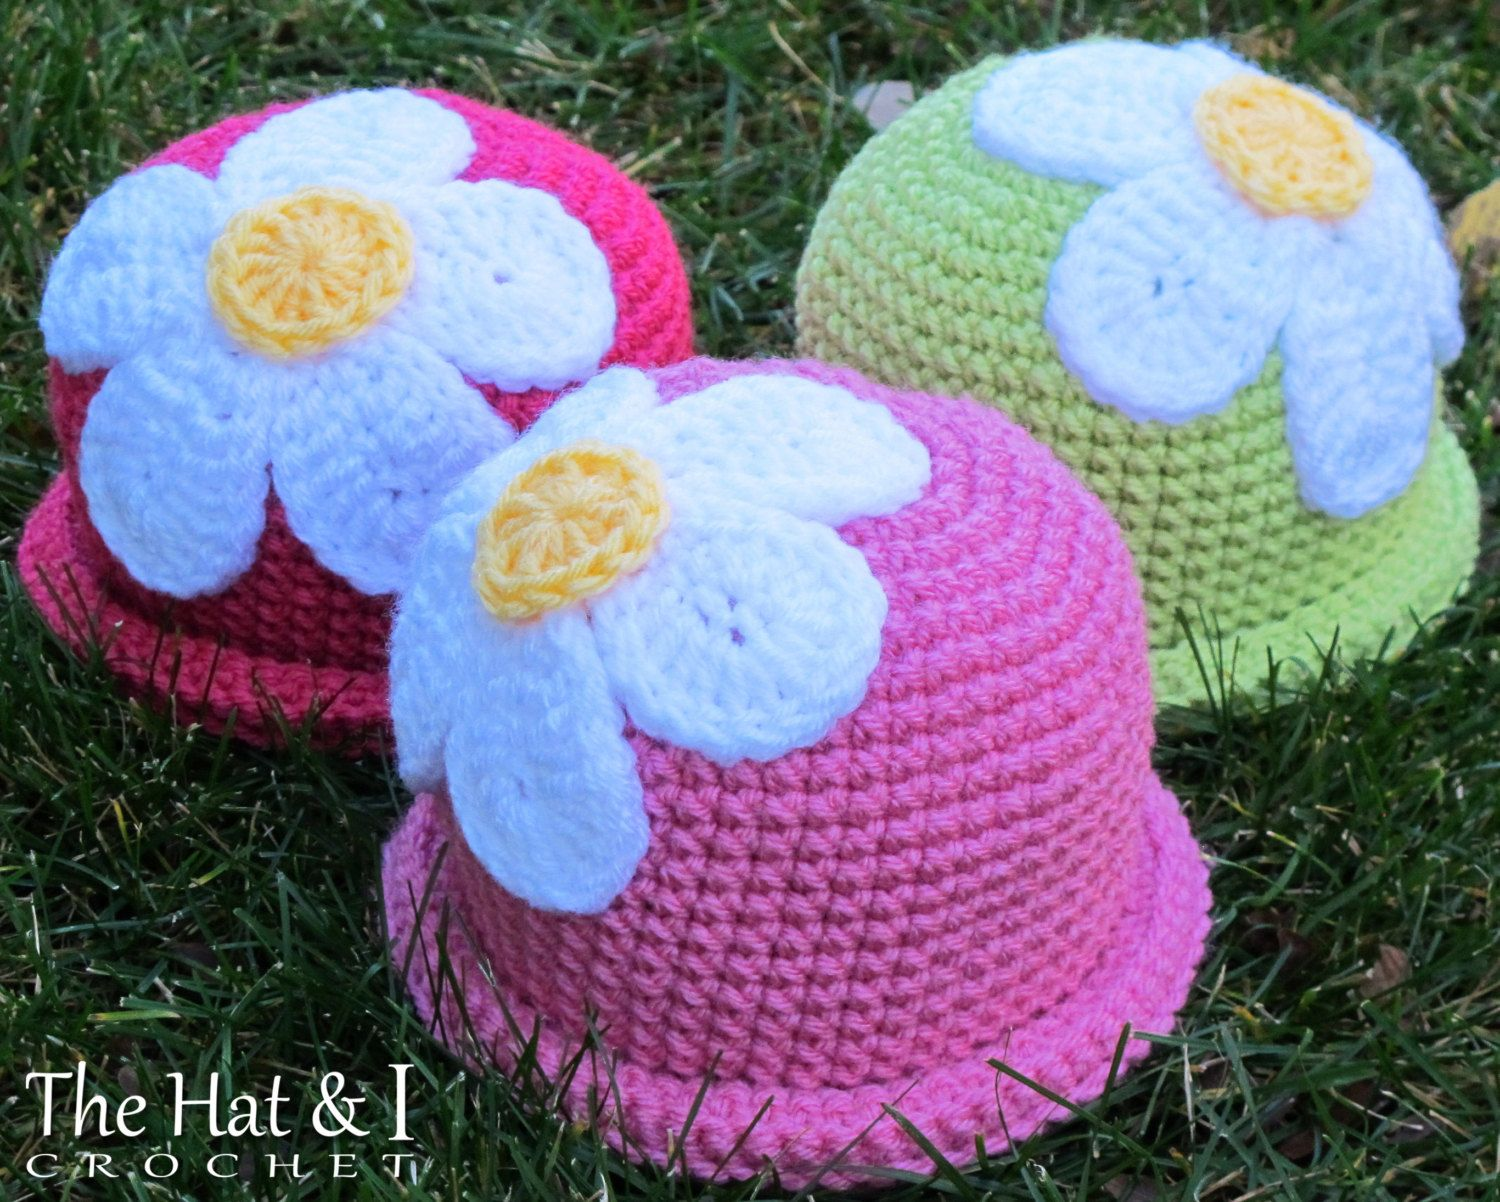 Crochet pattern spring fling a beanie hat with daisy flower in 5 crochet pattern spring fling a beanie hat with daisy flower in 5 sizes izmirmasajfo